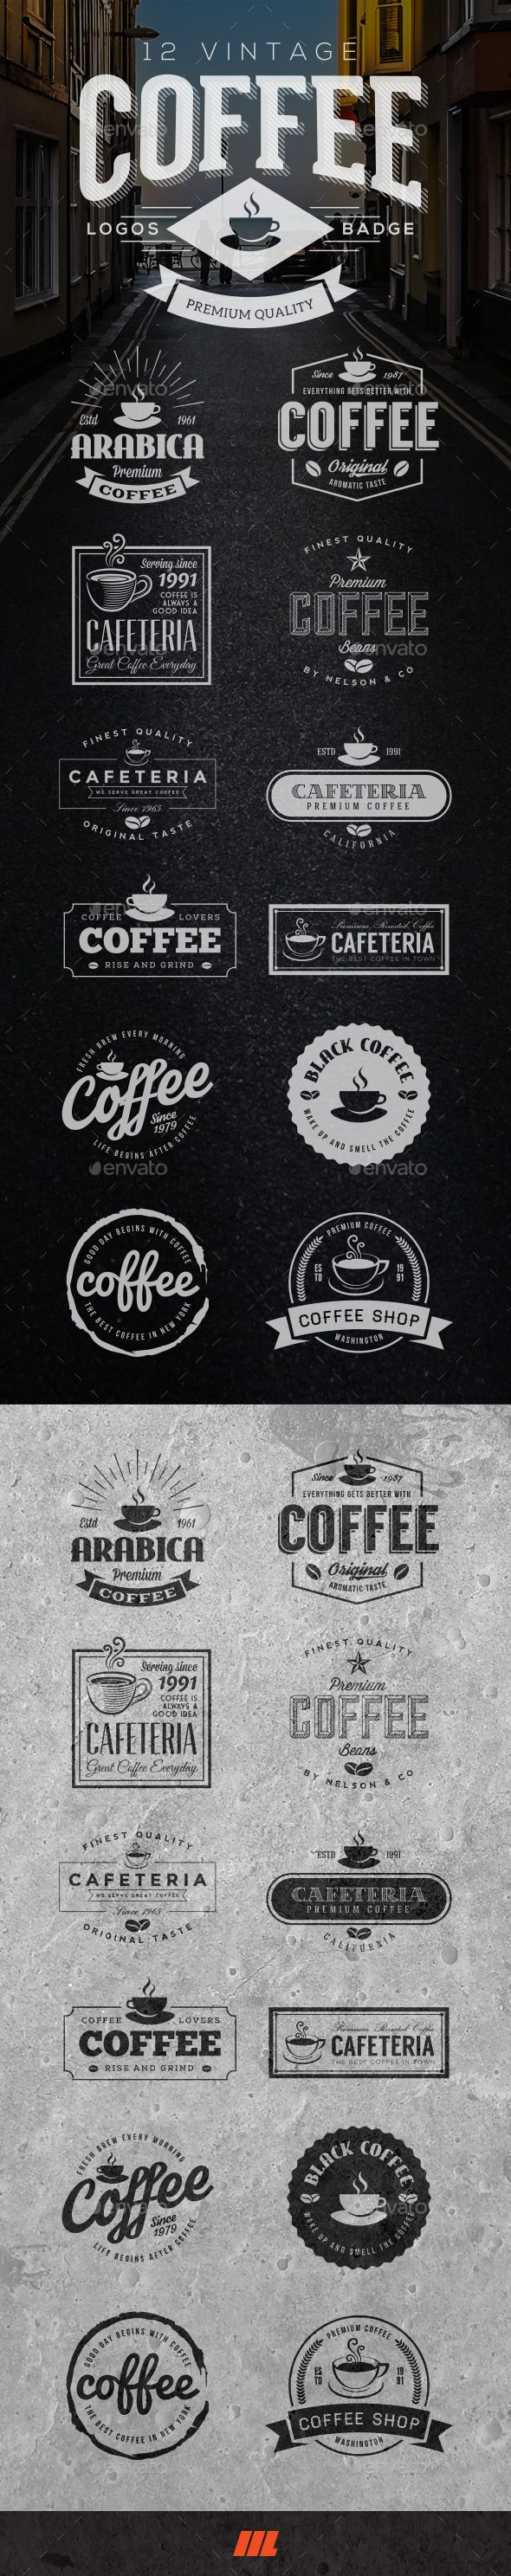 12 Retro Vintage Coffee Logo #design Download: http://graphicriver.net/item/12-retro-vintage-coffee-logo/11452453?ref=ksioks